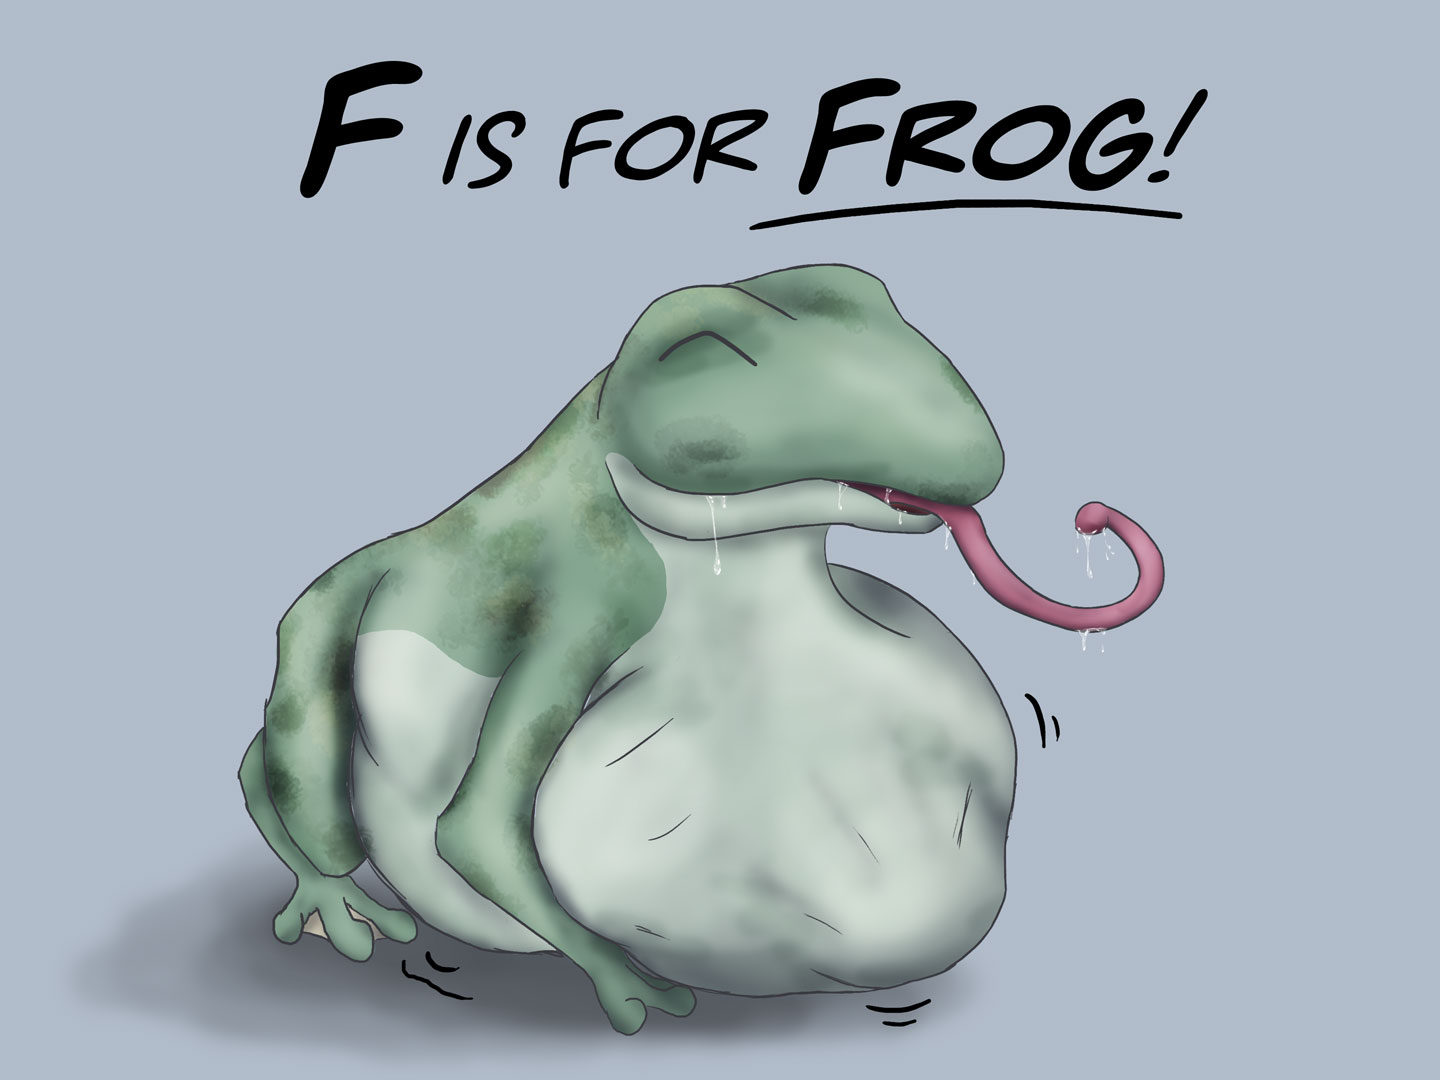 Free frog vore hentay picture